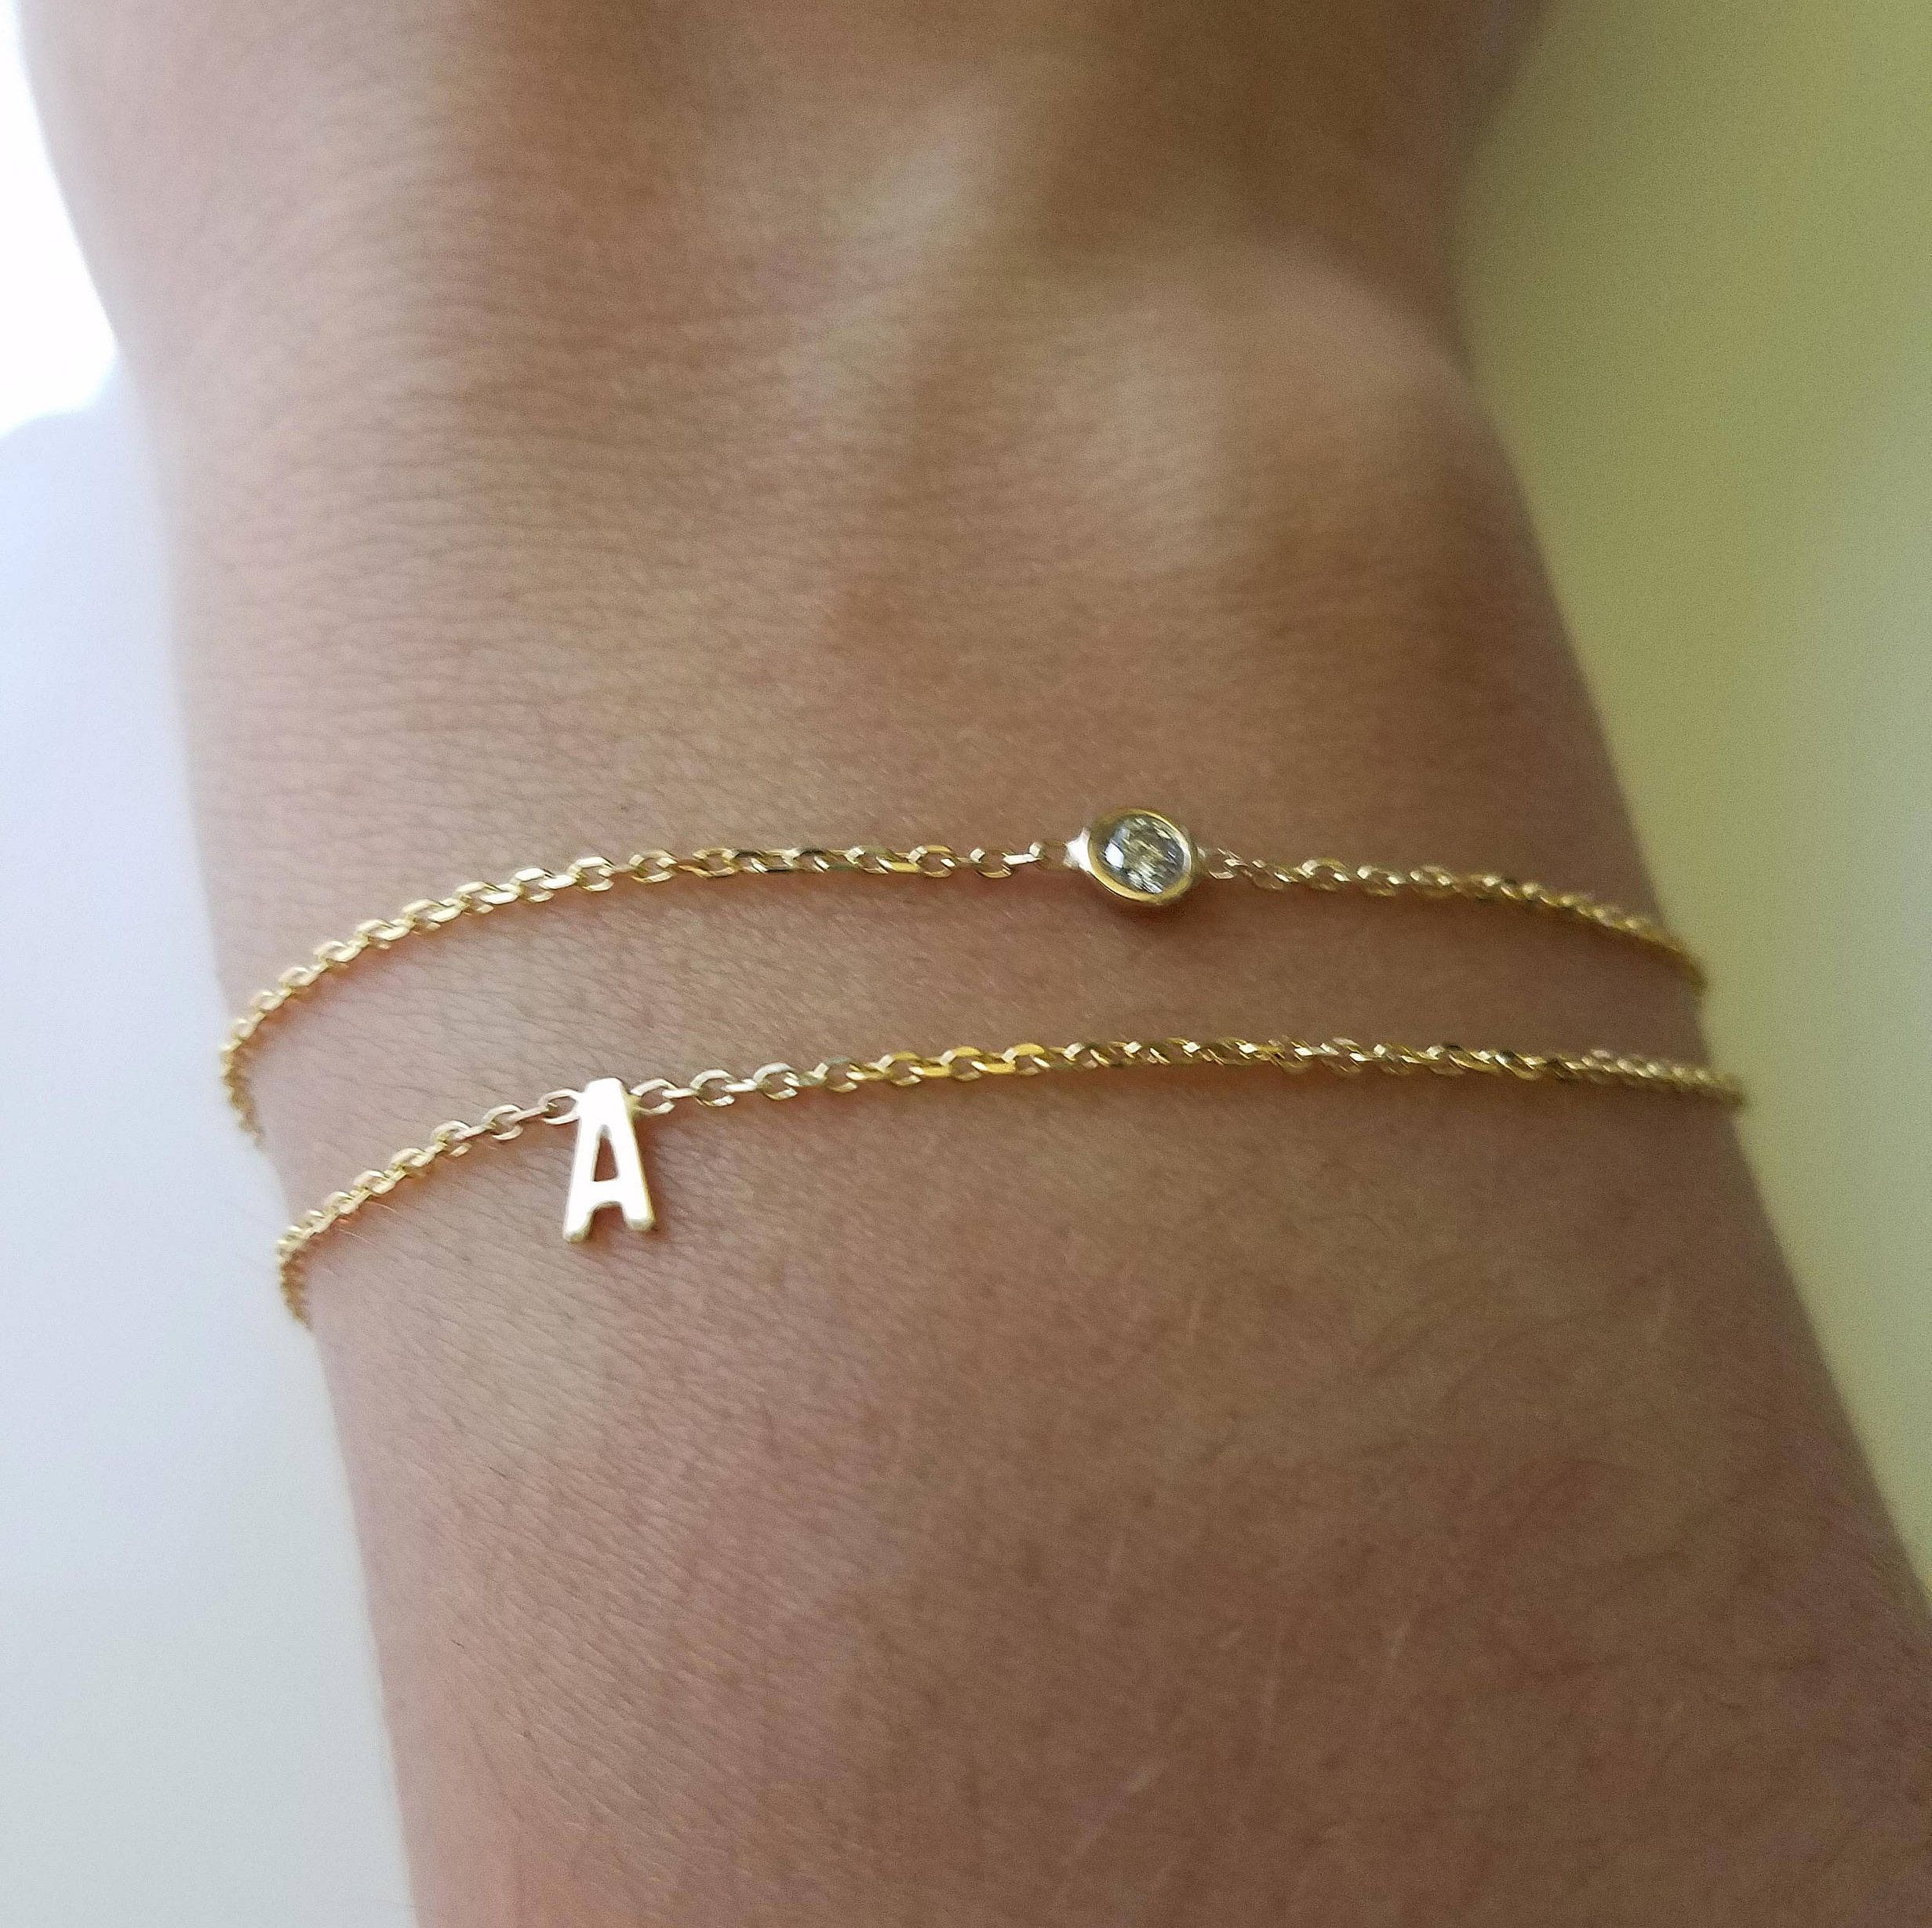 Diamond Bracelet With Initial Gemstone Bracelets Solid Gold Letter Bracelets Women Diamond Bracelets By Gvantsa Fine Jewelry Bracelets Ankle Bracelets Jewelry